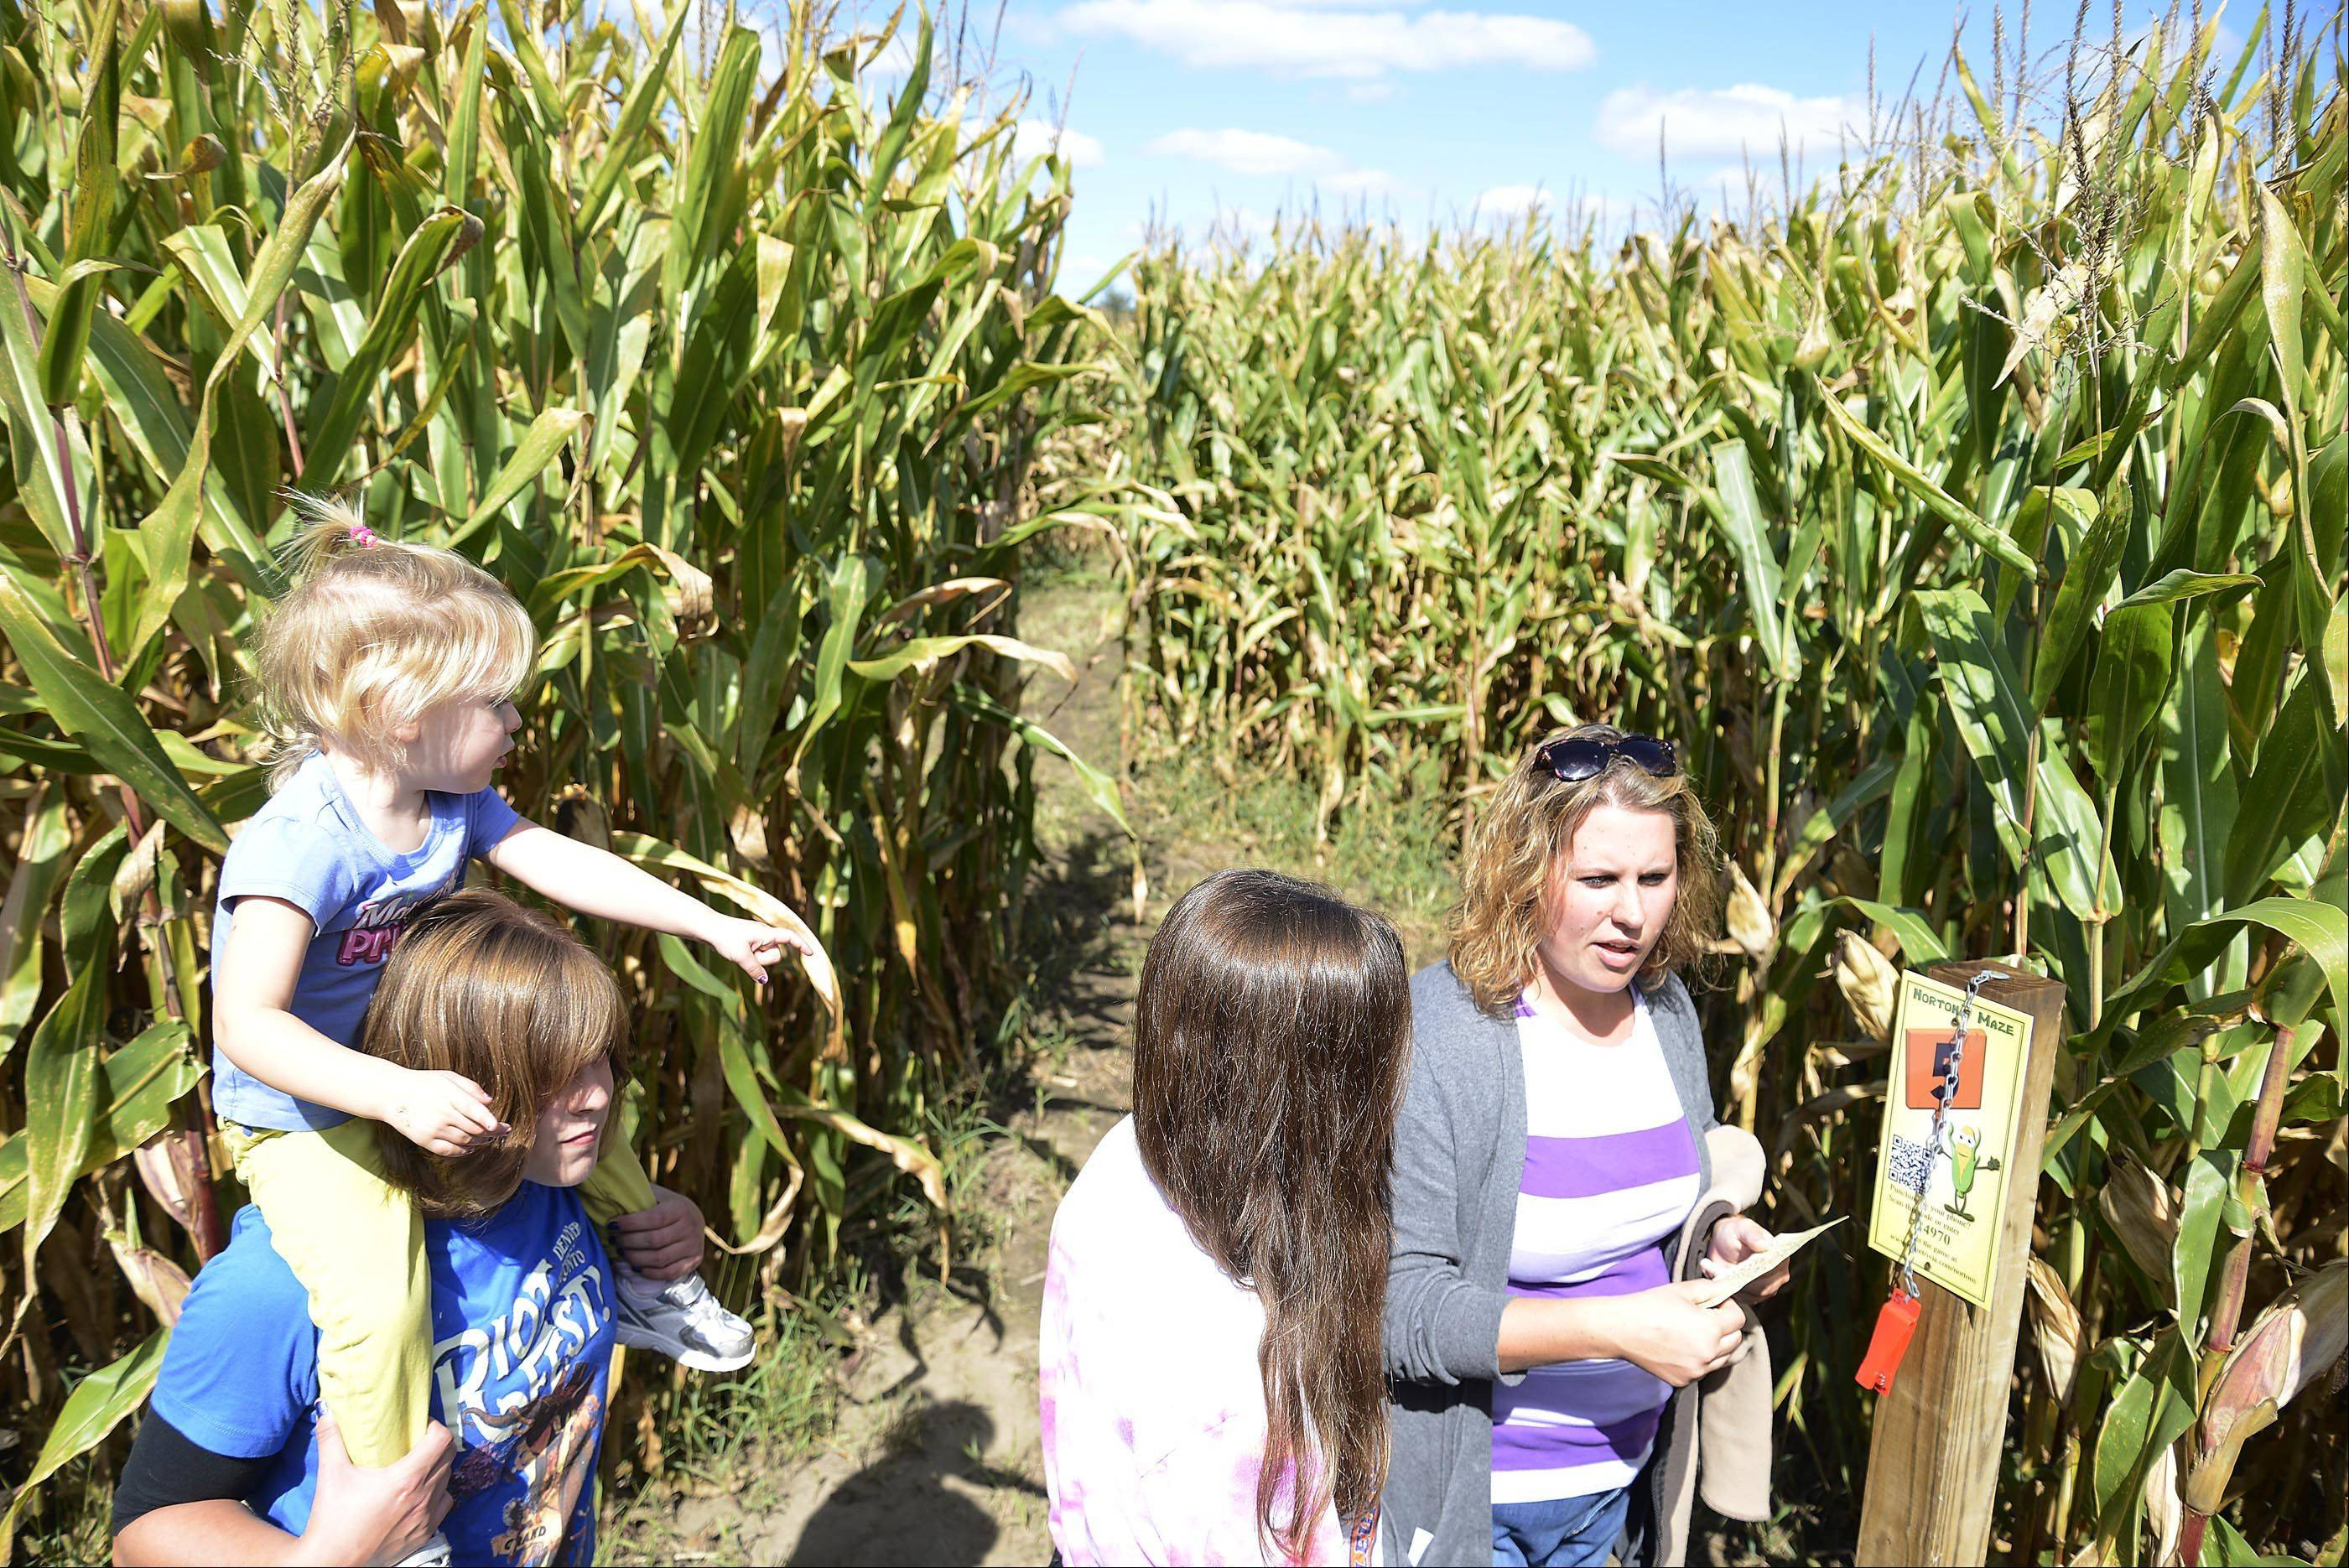 After punching her map at the fifth check point, Jessica Hanson, of St. Charles, decides which way to take her family at the Norton's Produce & Garden Center corn maze.